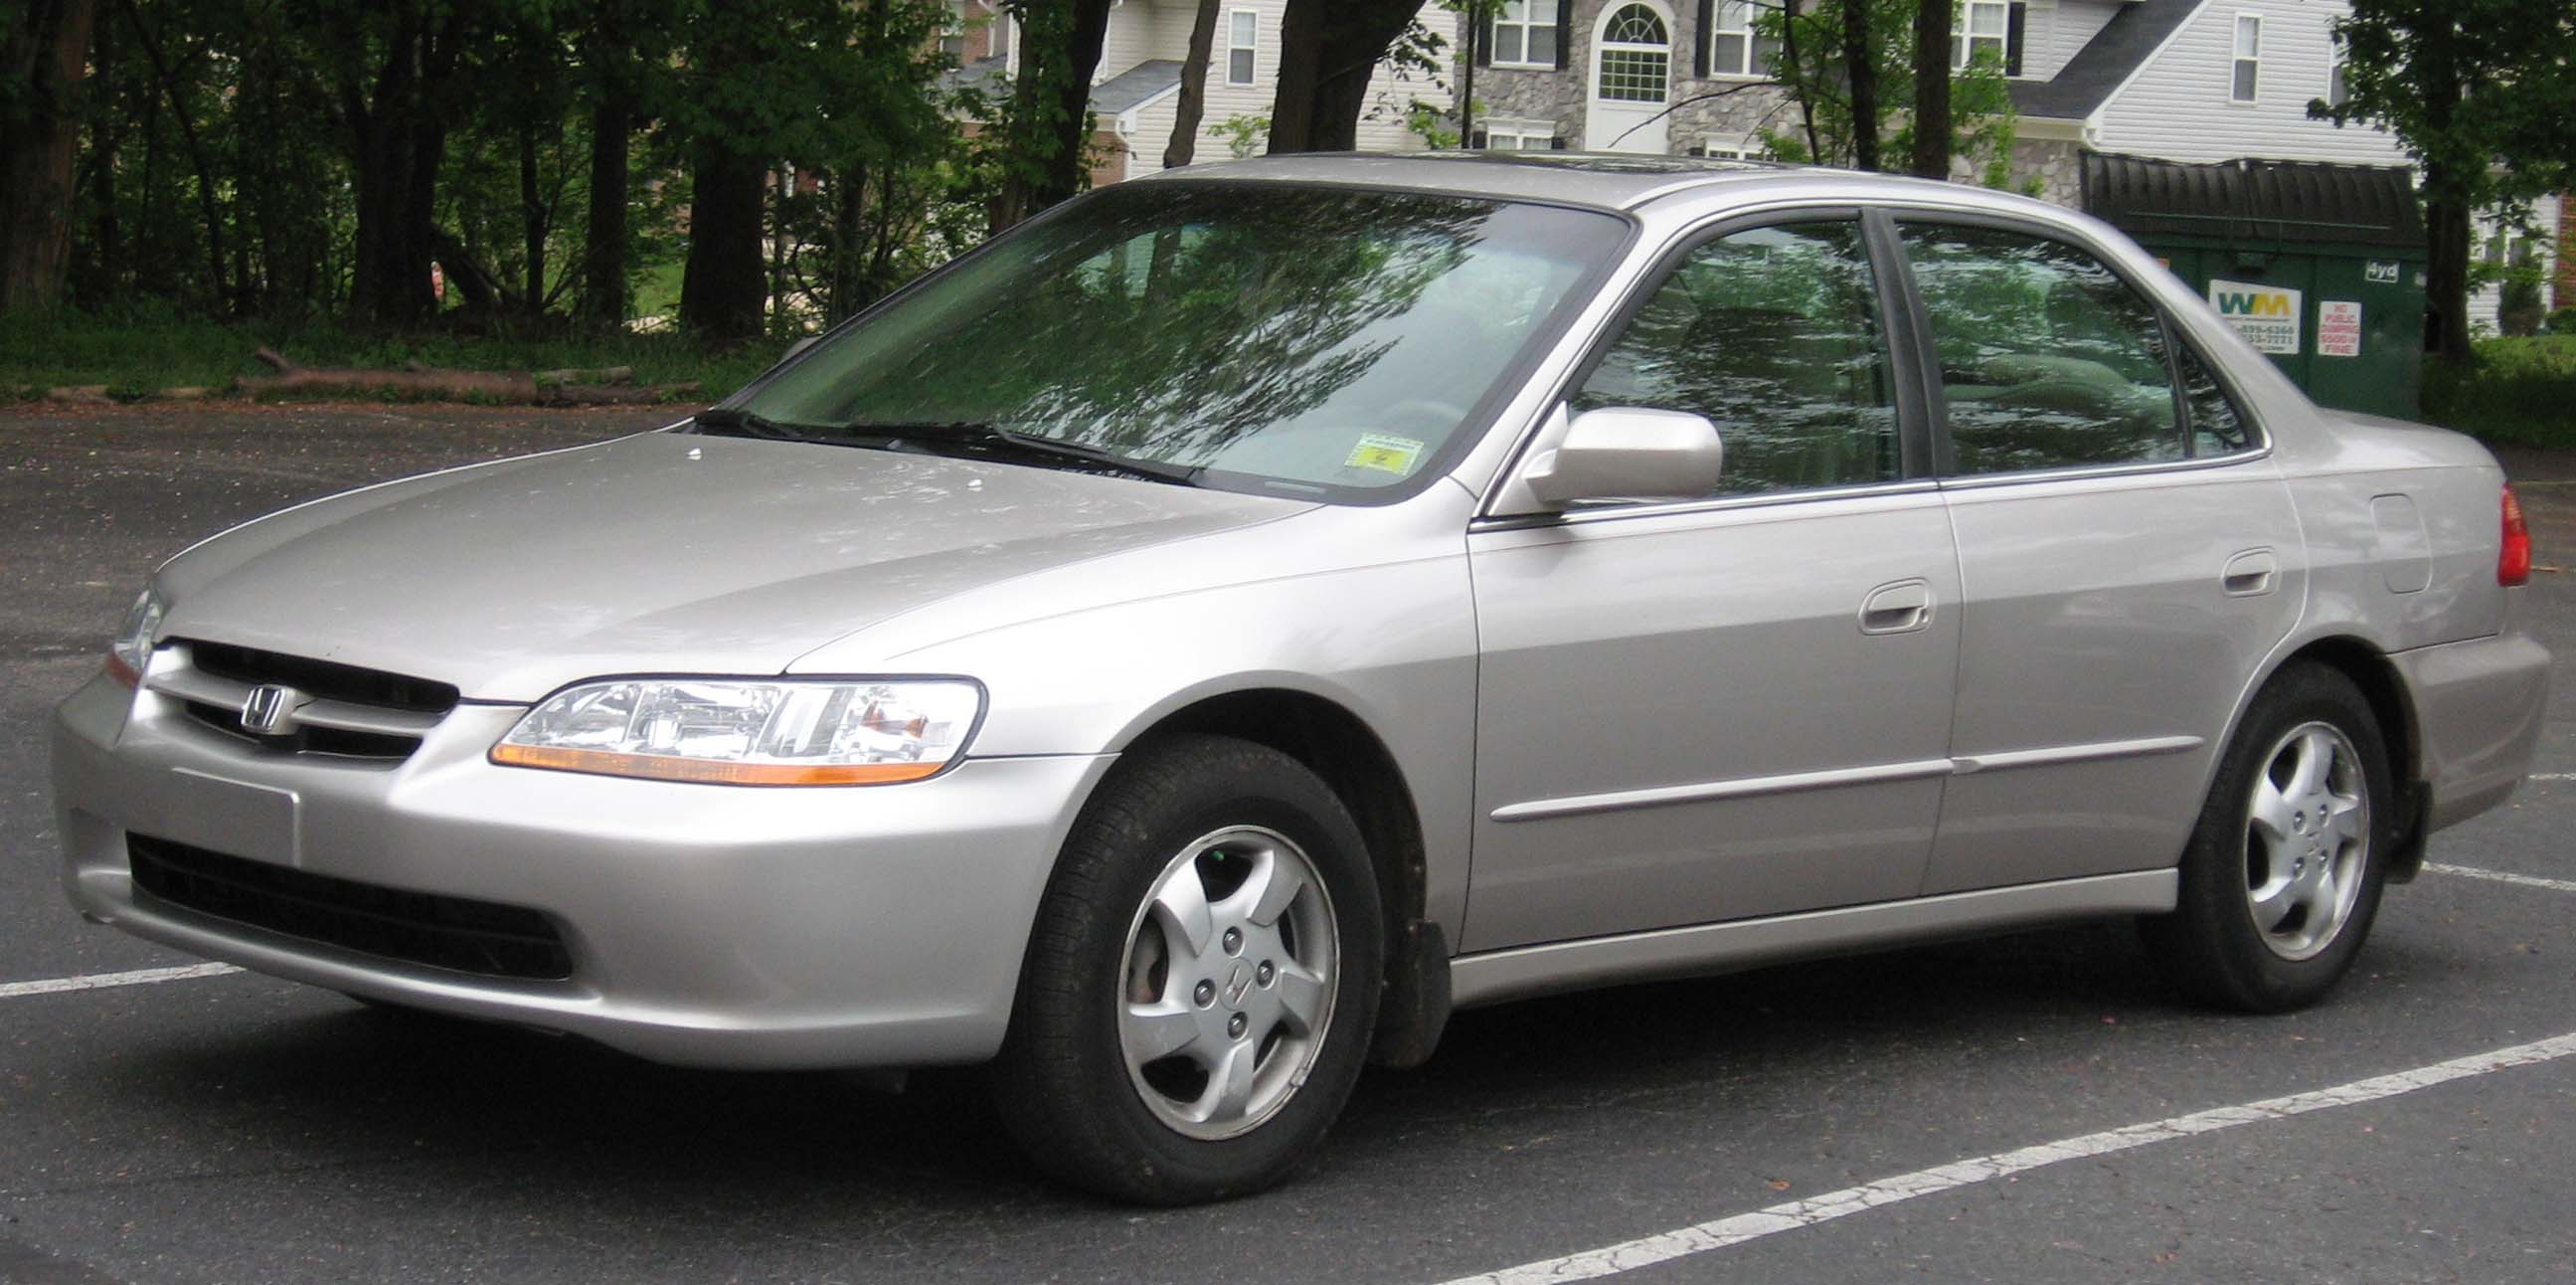 File:1998-2000 Honda Accord Sedan.jpg - Wikipedia